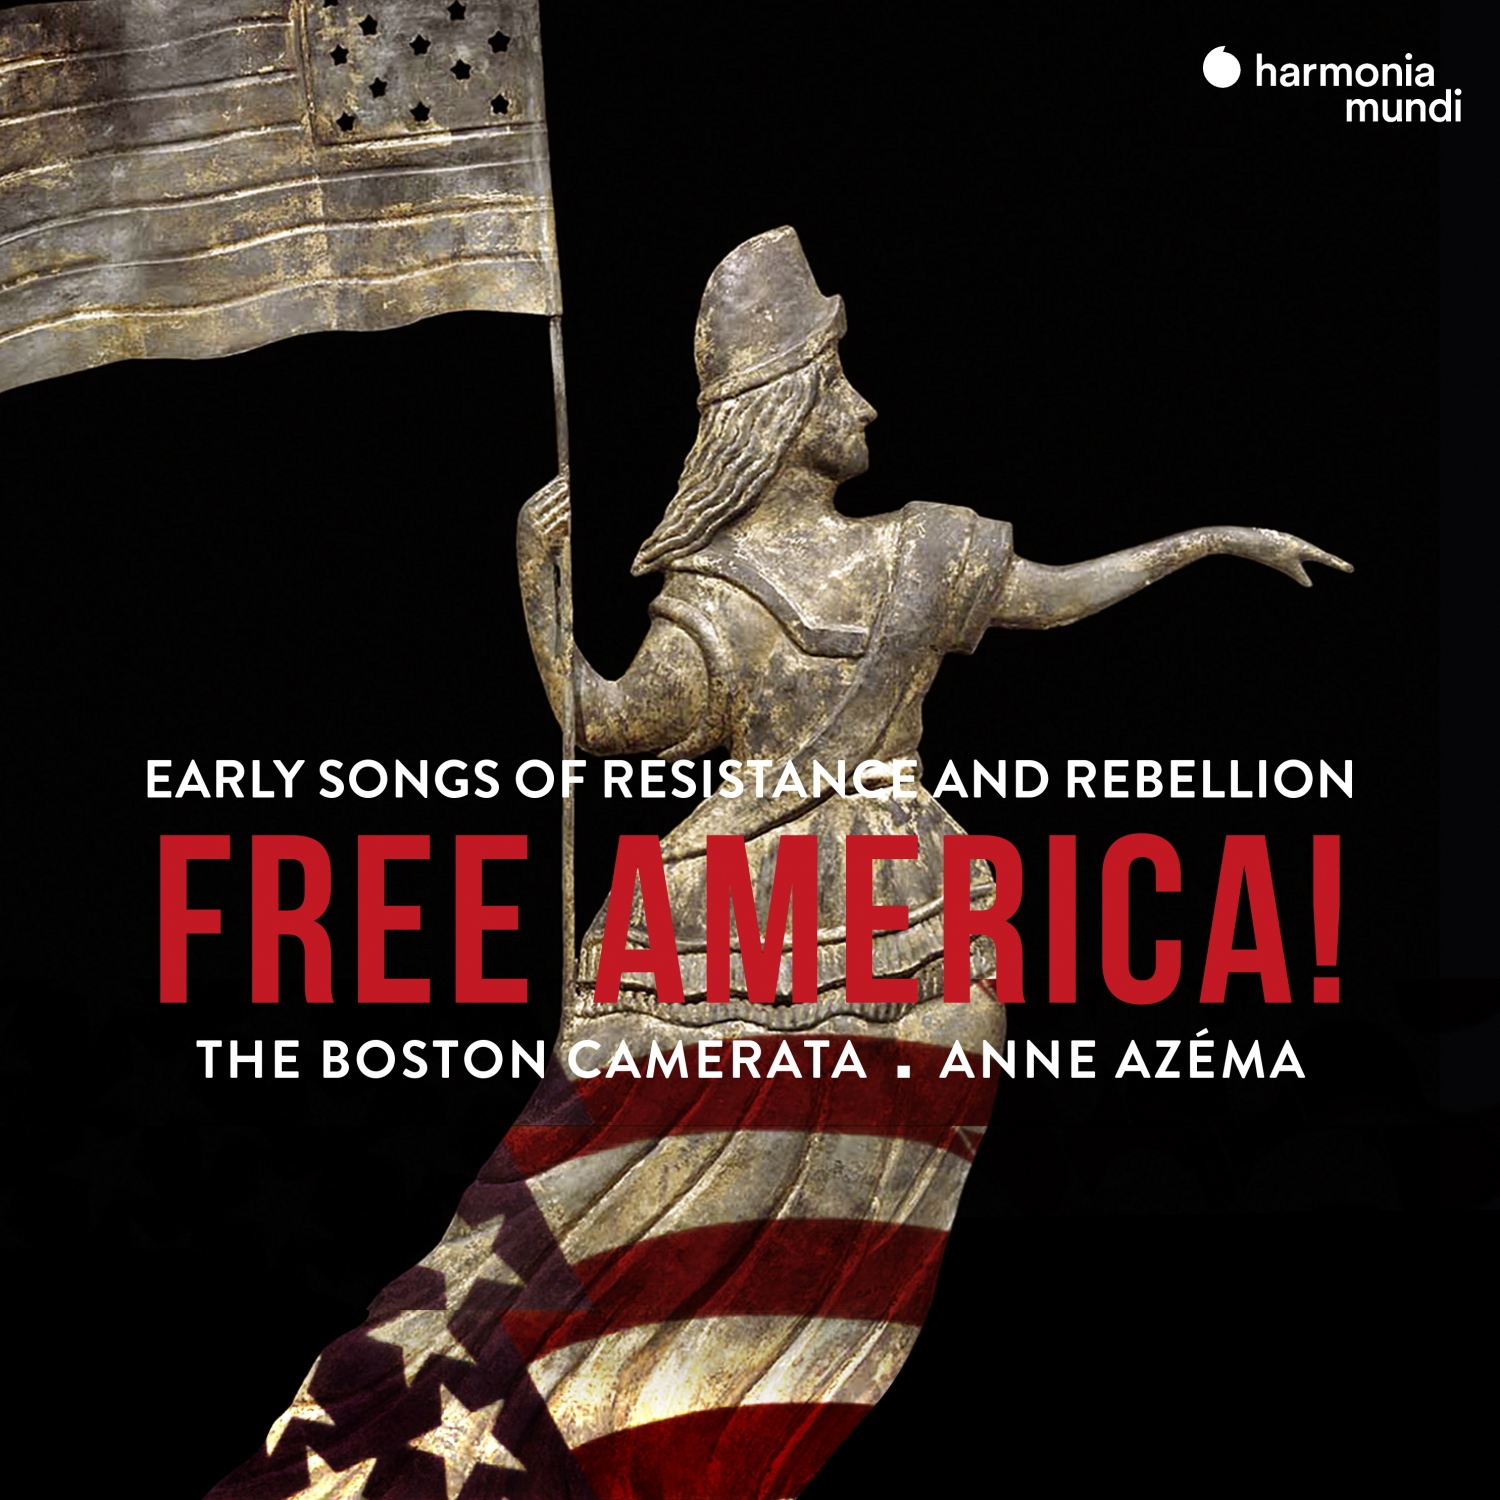 Caption: Free America, Credit: Harmonia Mundi